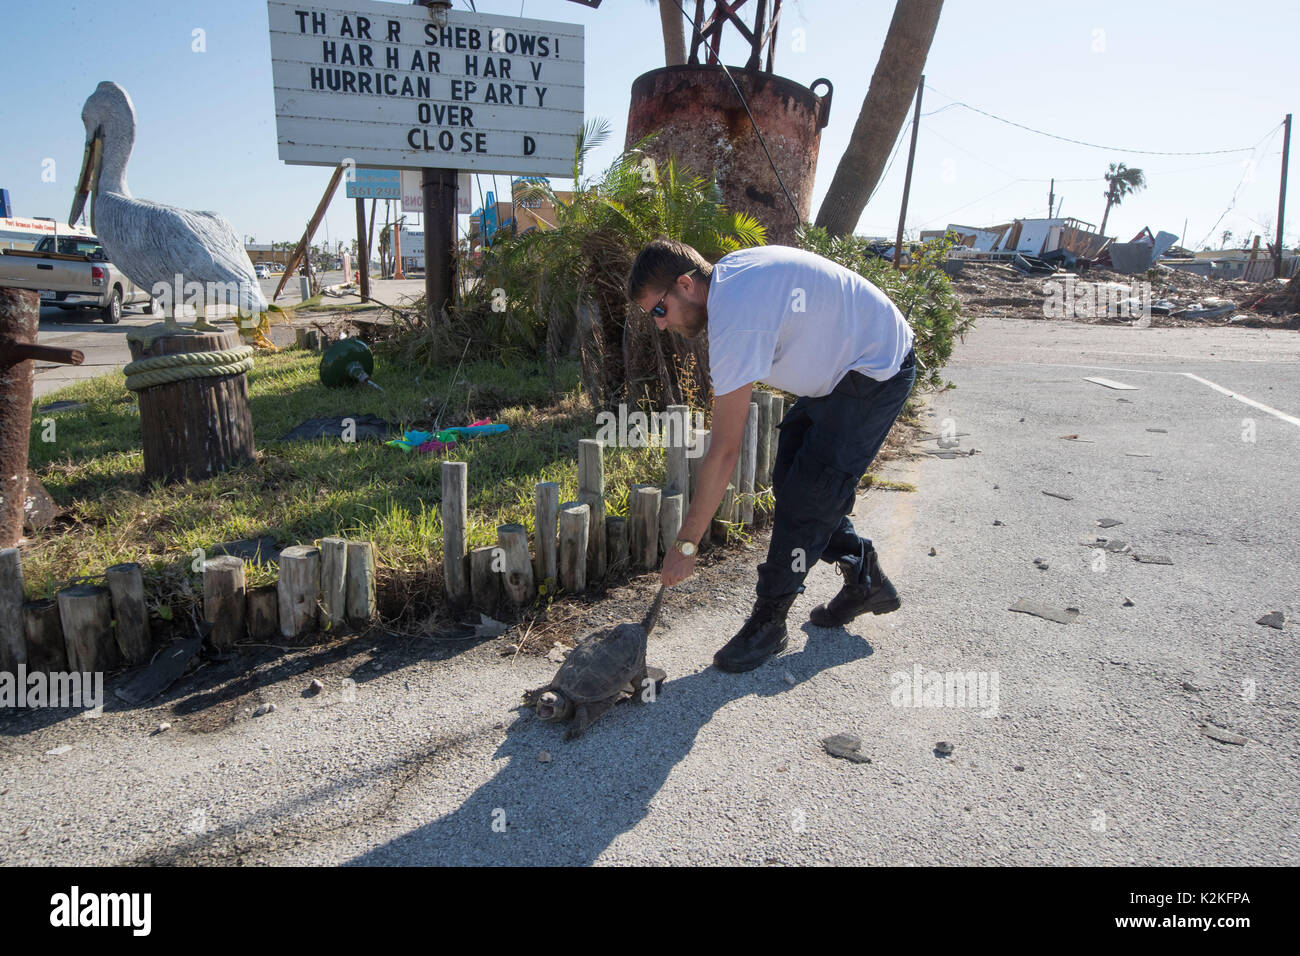 Port Aransas, TX, USA. 30th Aug, 2017. Paramedic Danny Johnson gets a snapping turtle out of harm's way as cleanup starts in Port Aransas Texas near Corpus Christi following Hurricane Harvey. Credit: Bob Daemmrich/Alamy Live News - Stock Image